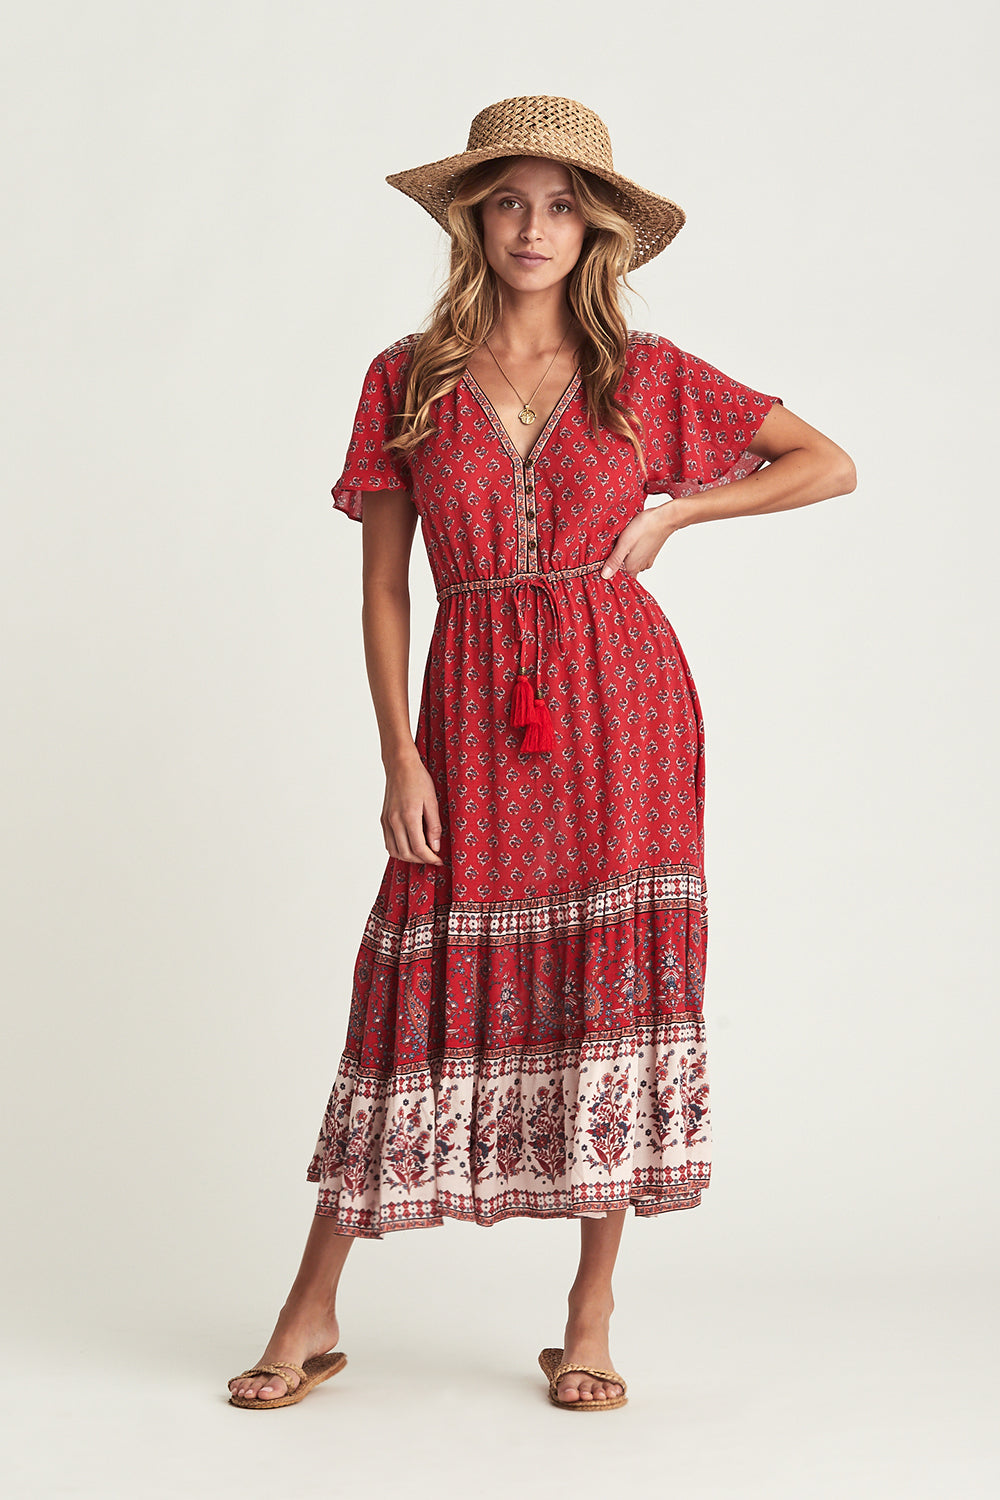 Serafina Sundress in Crimson Skies